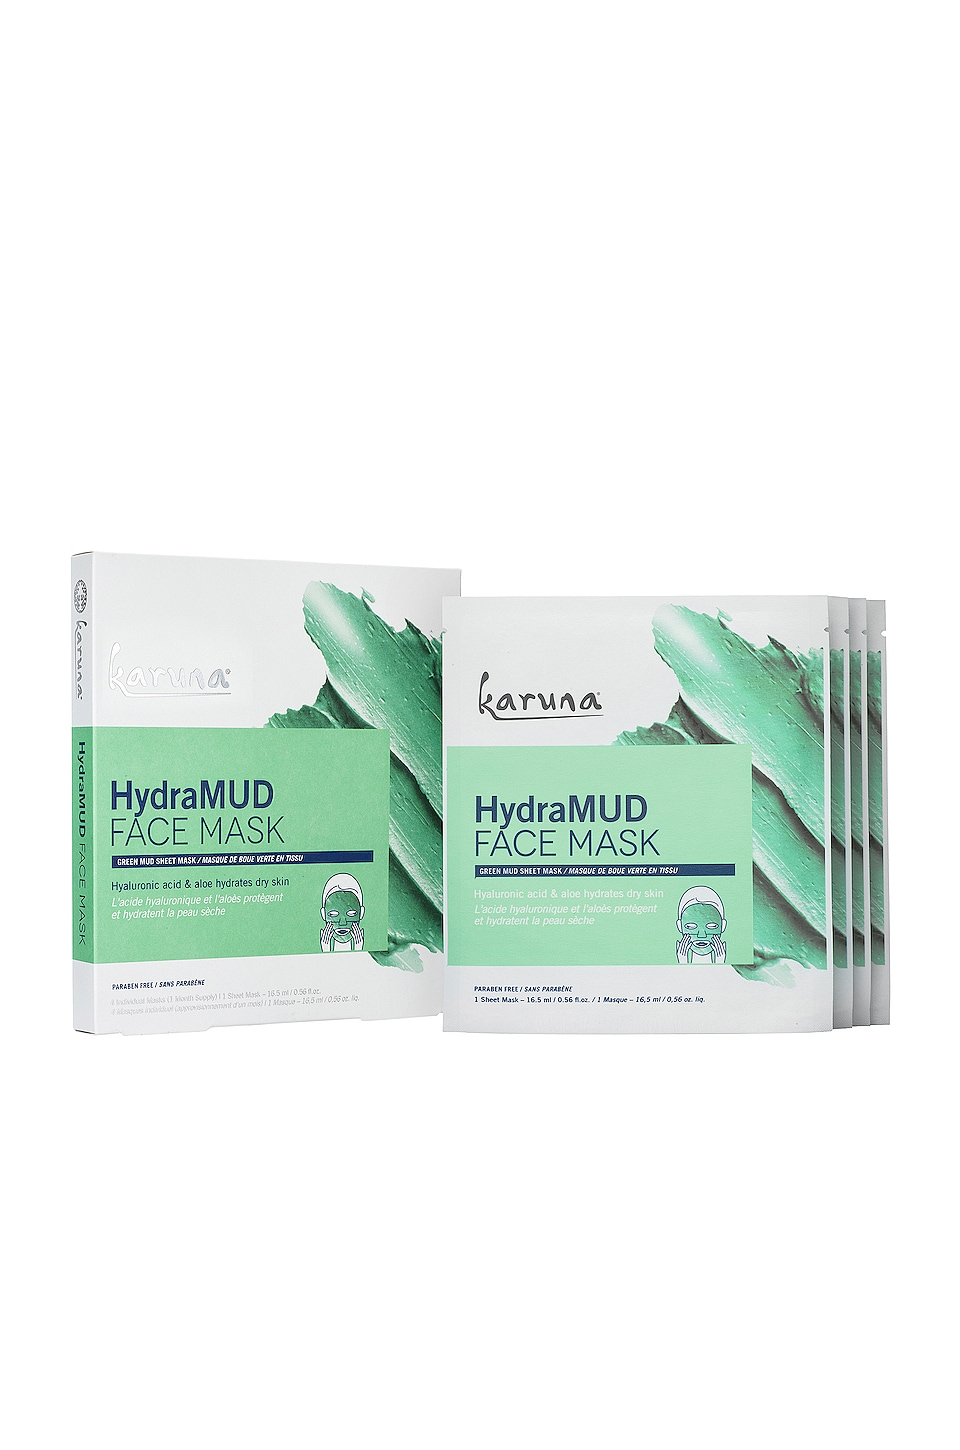 Karuna HydraMUD Face Mask 4 Pack